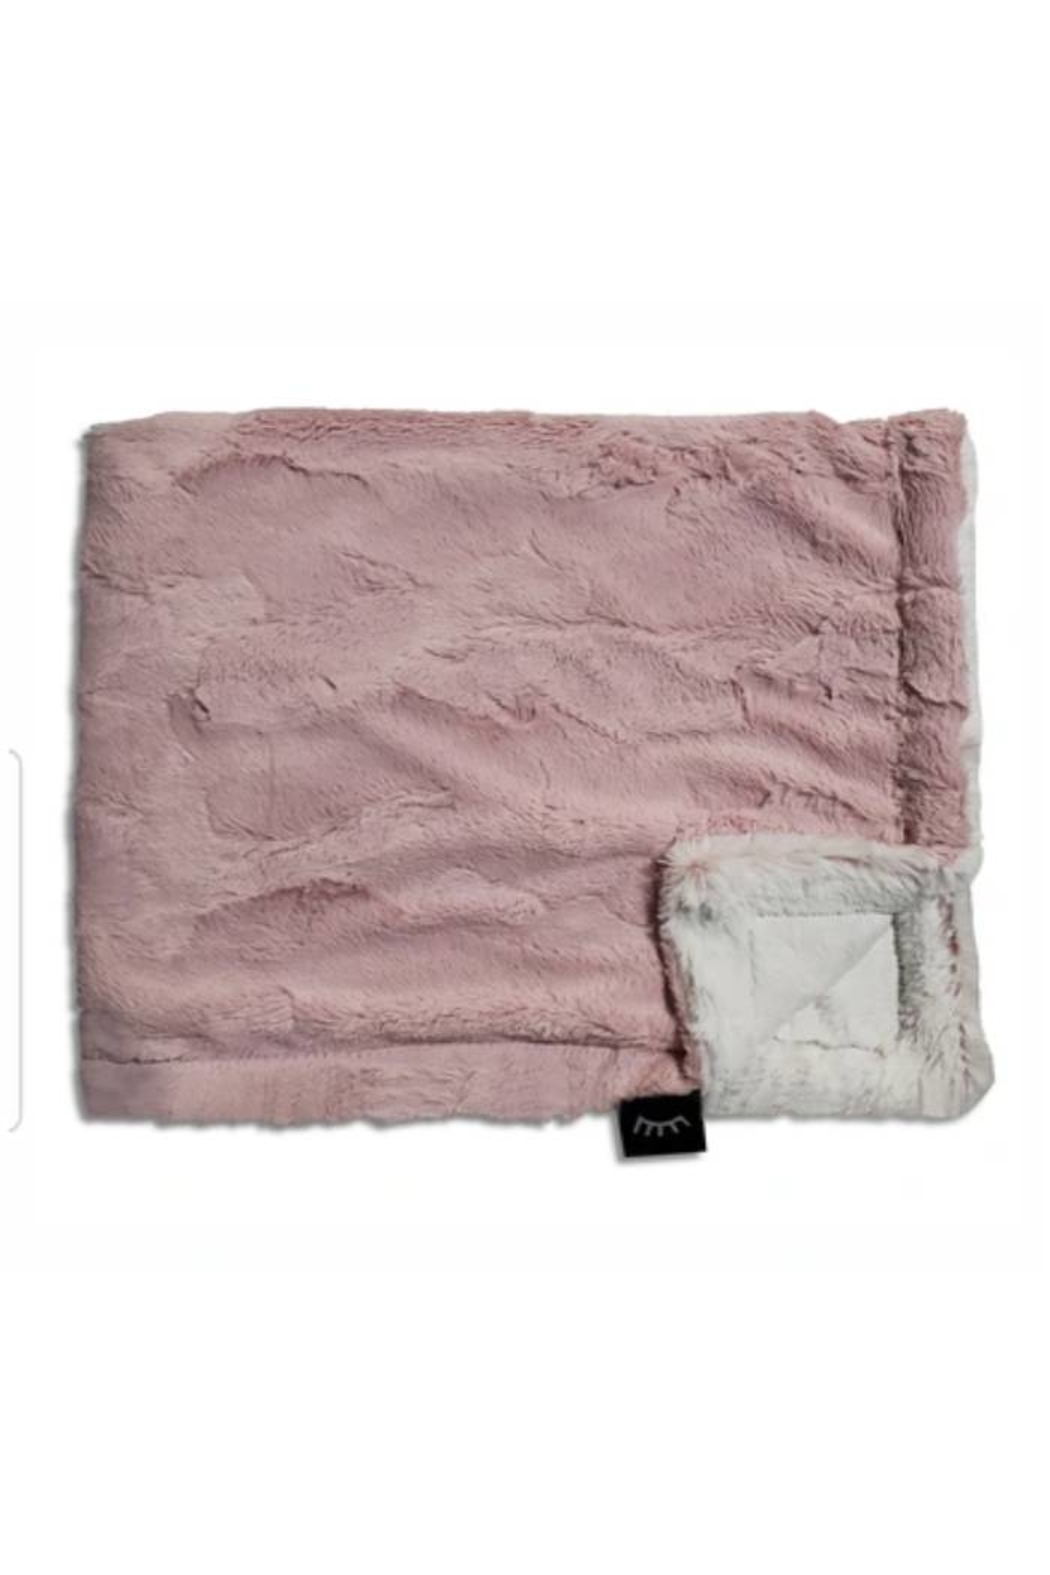 Winx+Blinx Rosewood Frost Mini Minky Blanket (13 X 12.5 Inches)for Newborn Baby Boys Girls Winter Swaddle - Main Image